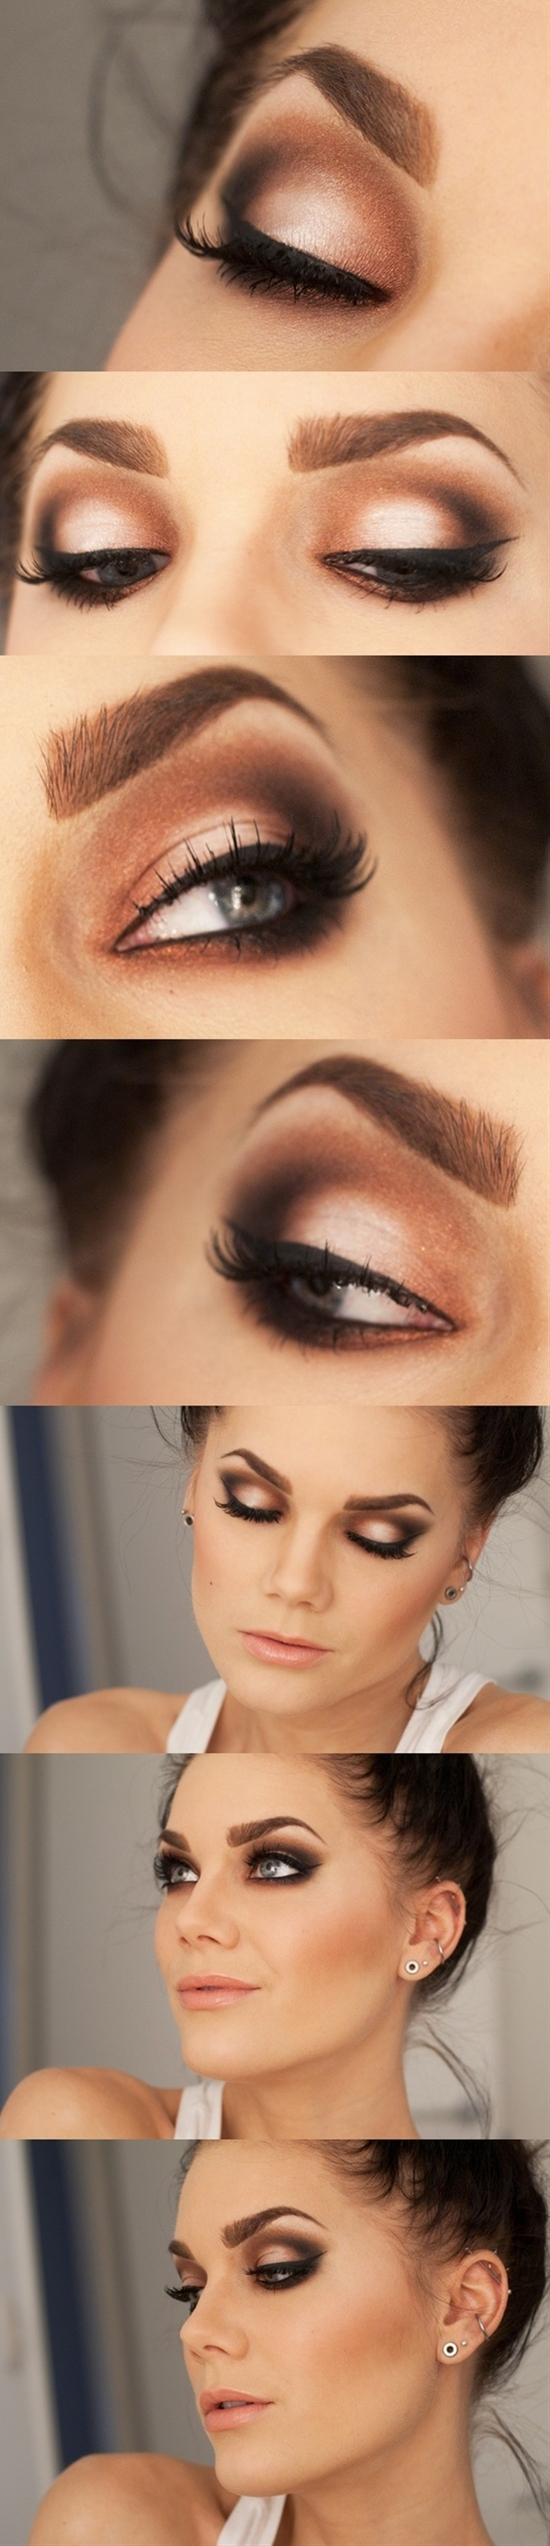 Girls Night Out Eyes  All about Nails  Pinterest  Girls night